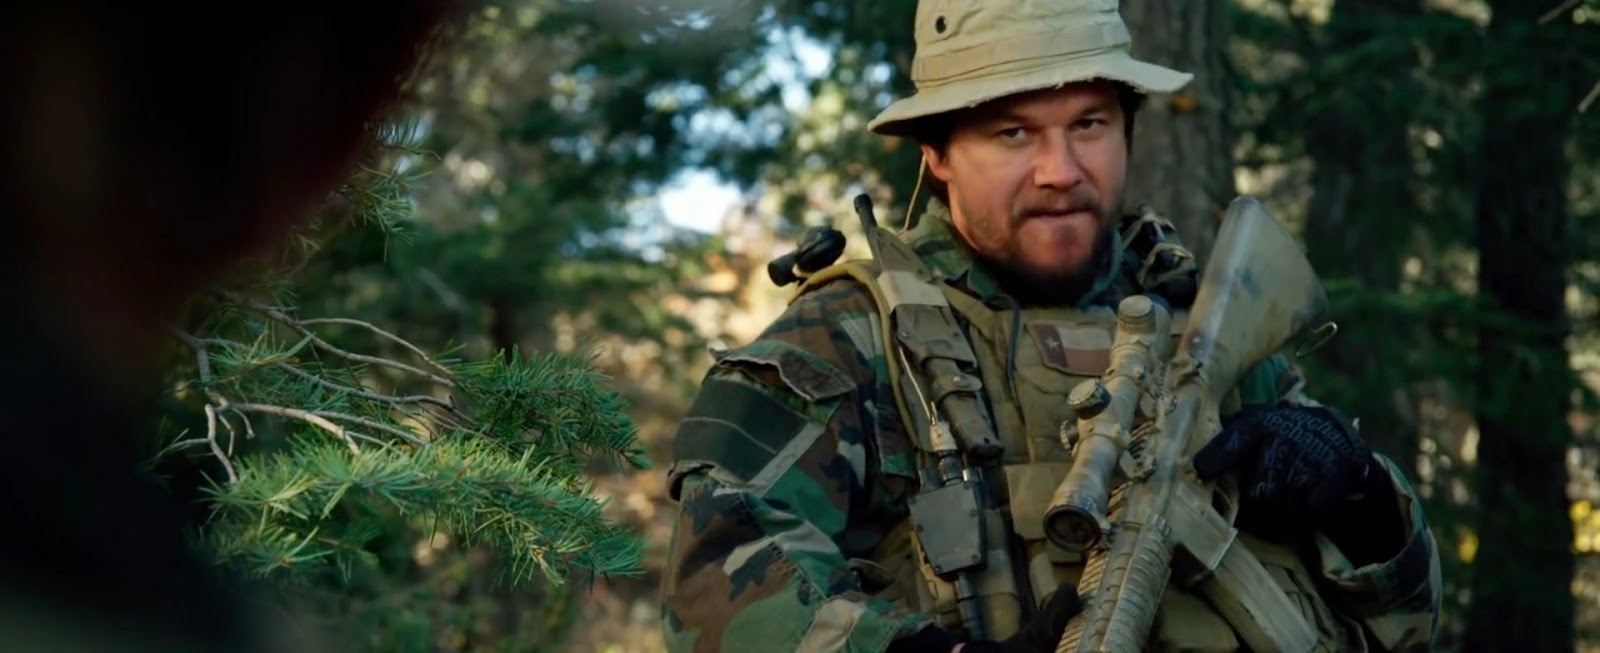 Lone Survivor - Marcus Luttrell's Backpack and Accessories